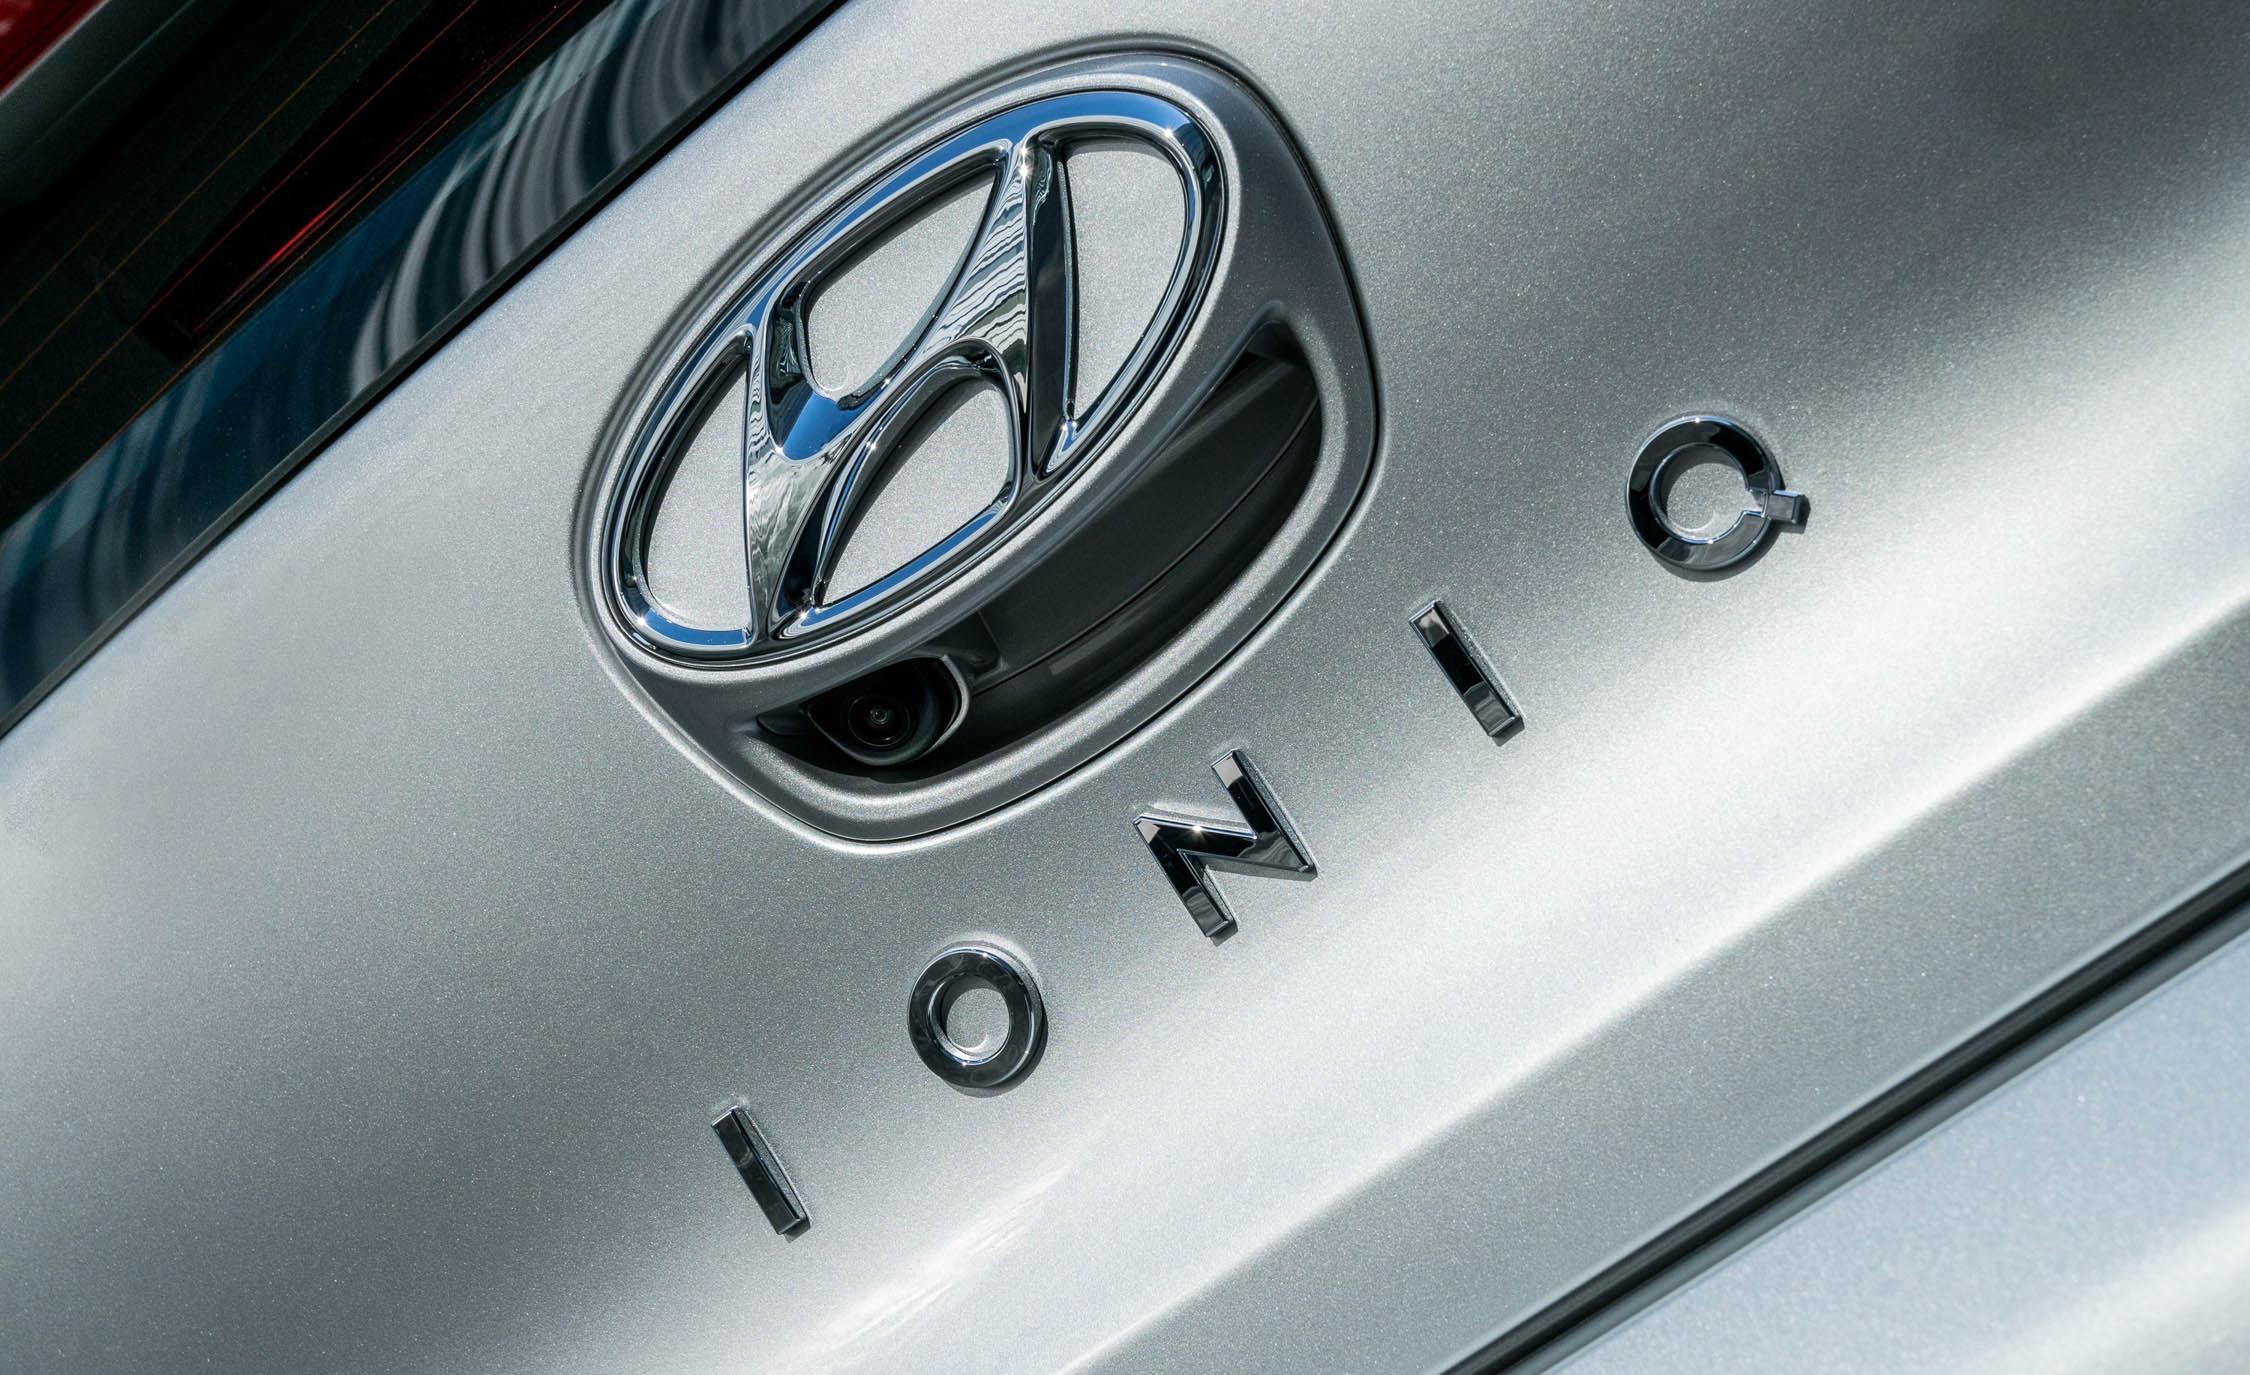 2017 Hyundai Ioniq Electric Exterior View Rear Emblem (Photo 15 of 67)